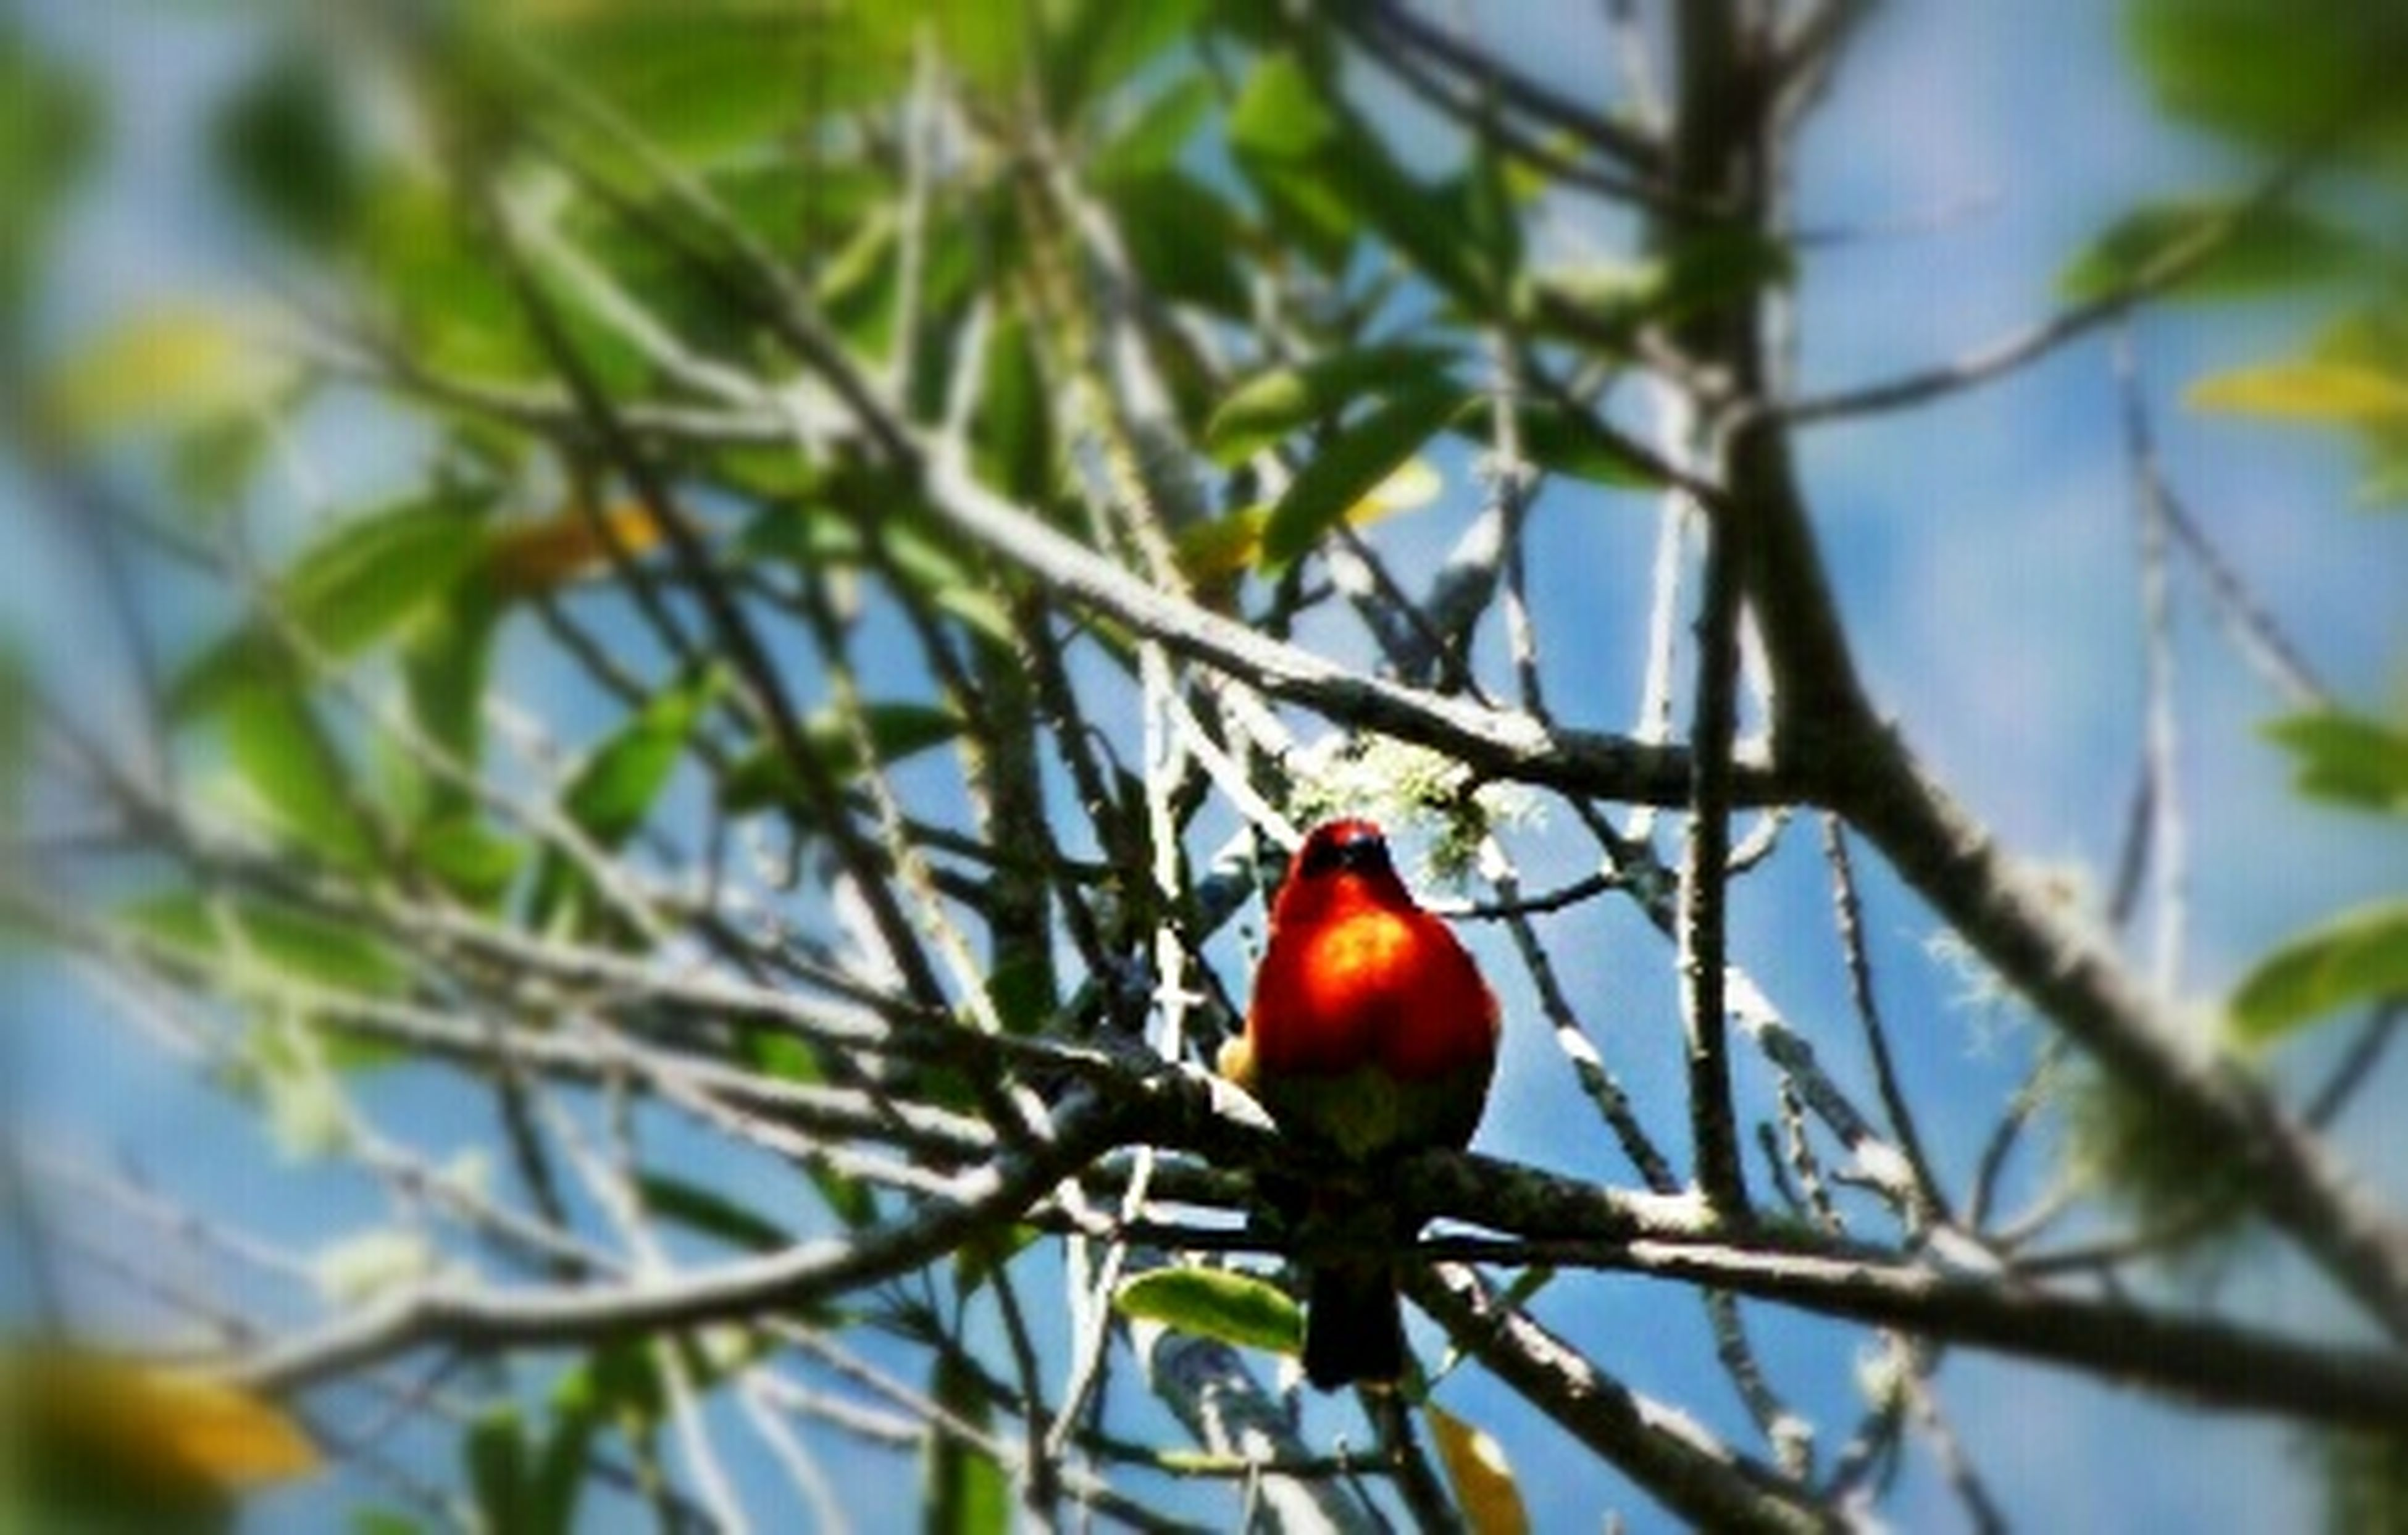 branch, animal themes, animals in the wild, tree, fruit, wildlife, one animal, bird, red, perching, focus on foreground, low angle view, food and drink, nature, leaf, close-up, food, hanging, growth, day